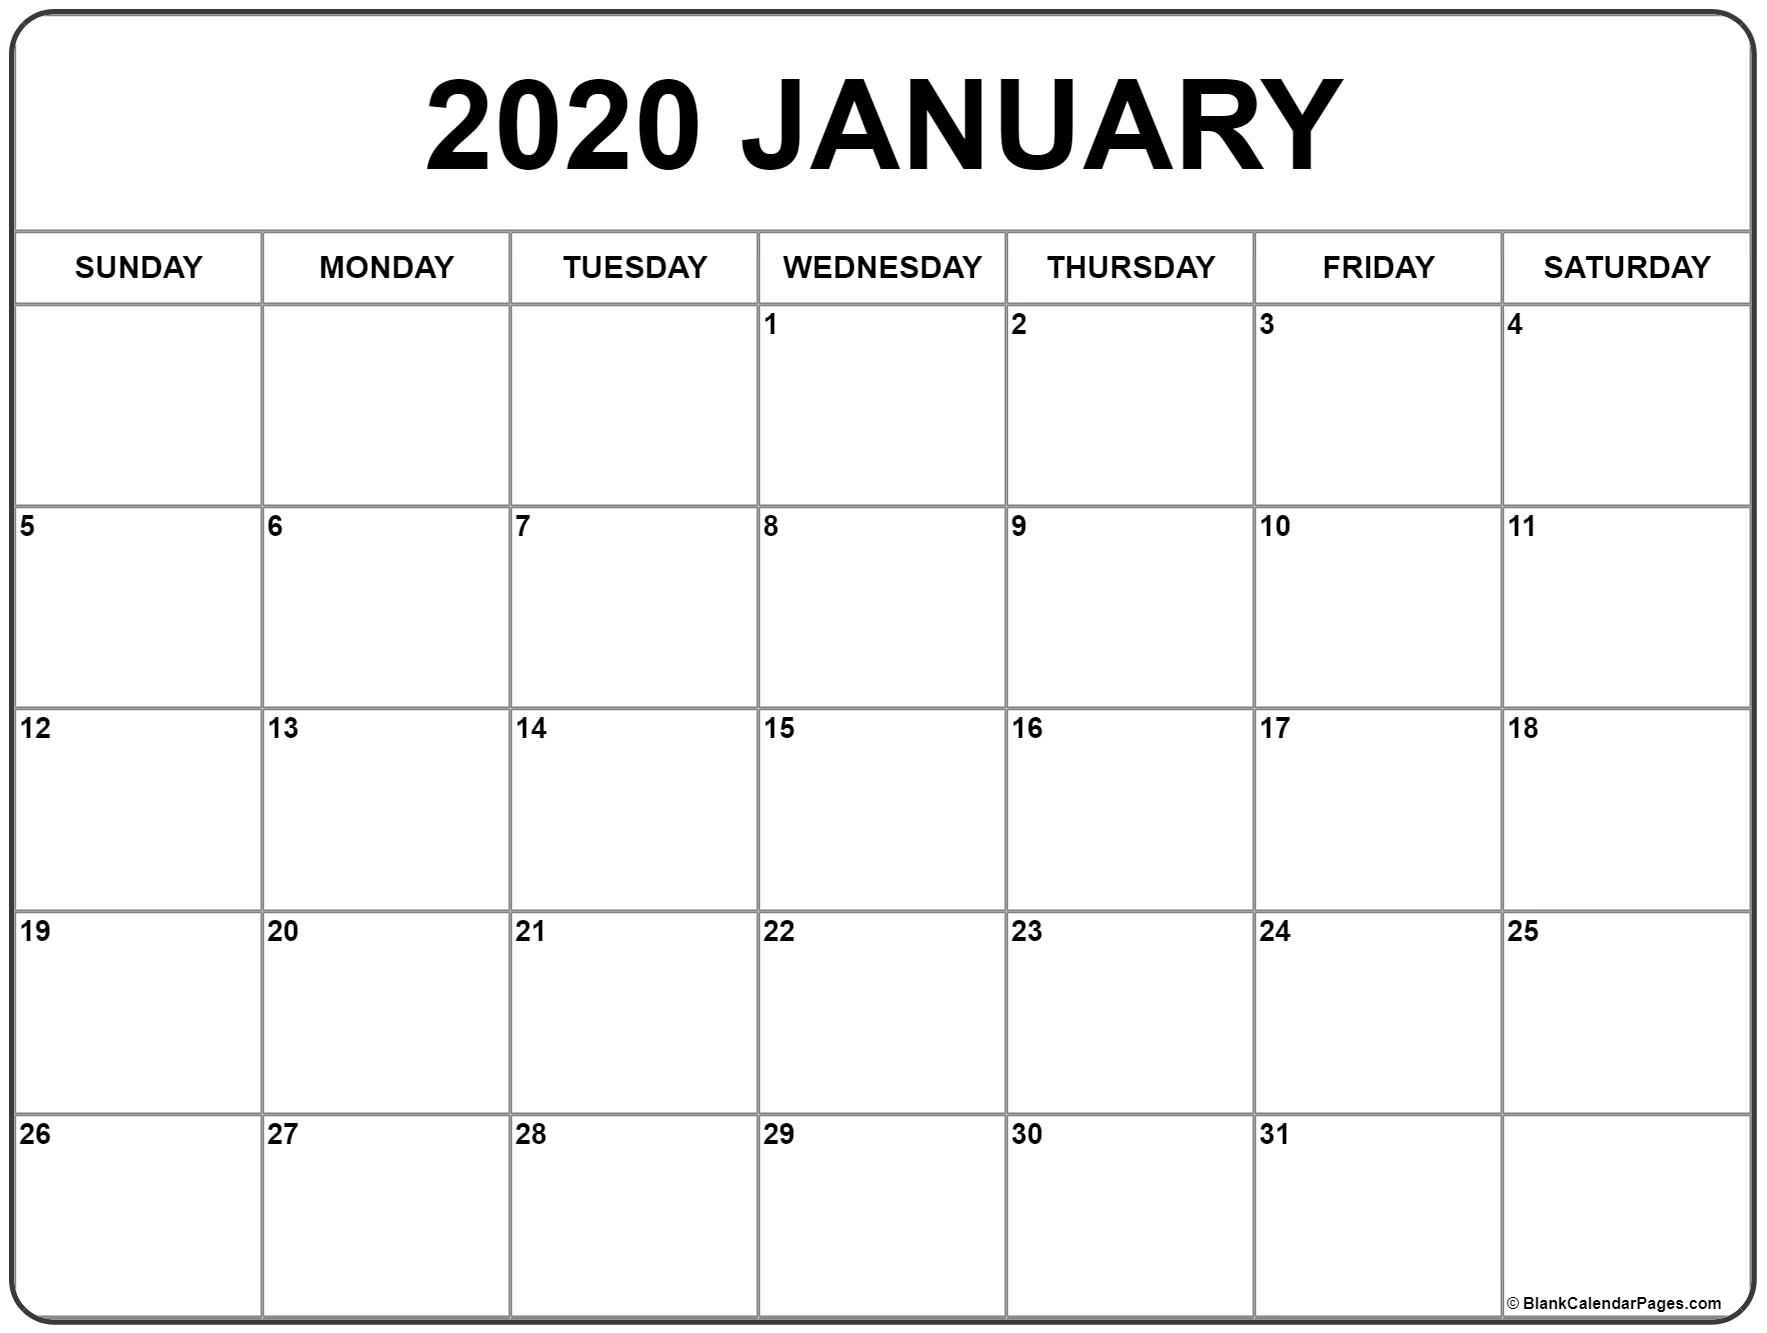 January 2020 Calendar | Free Printable Monthly Calendars-January 2020 Calendar Download